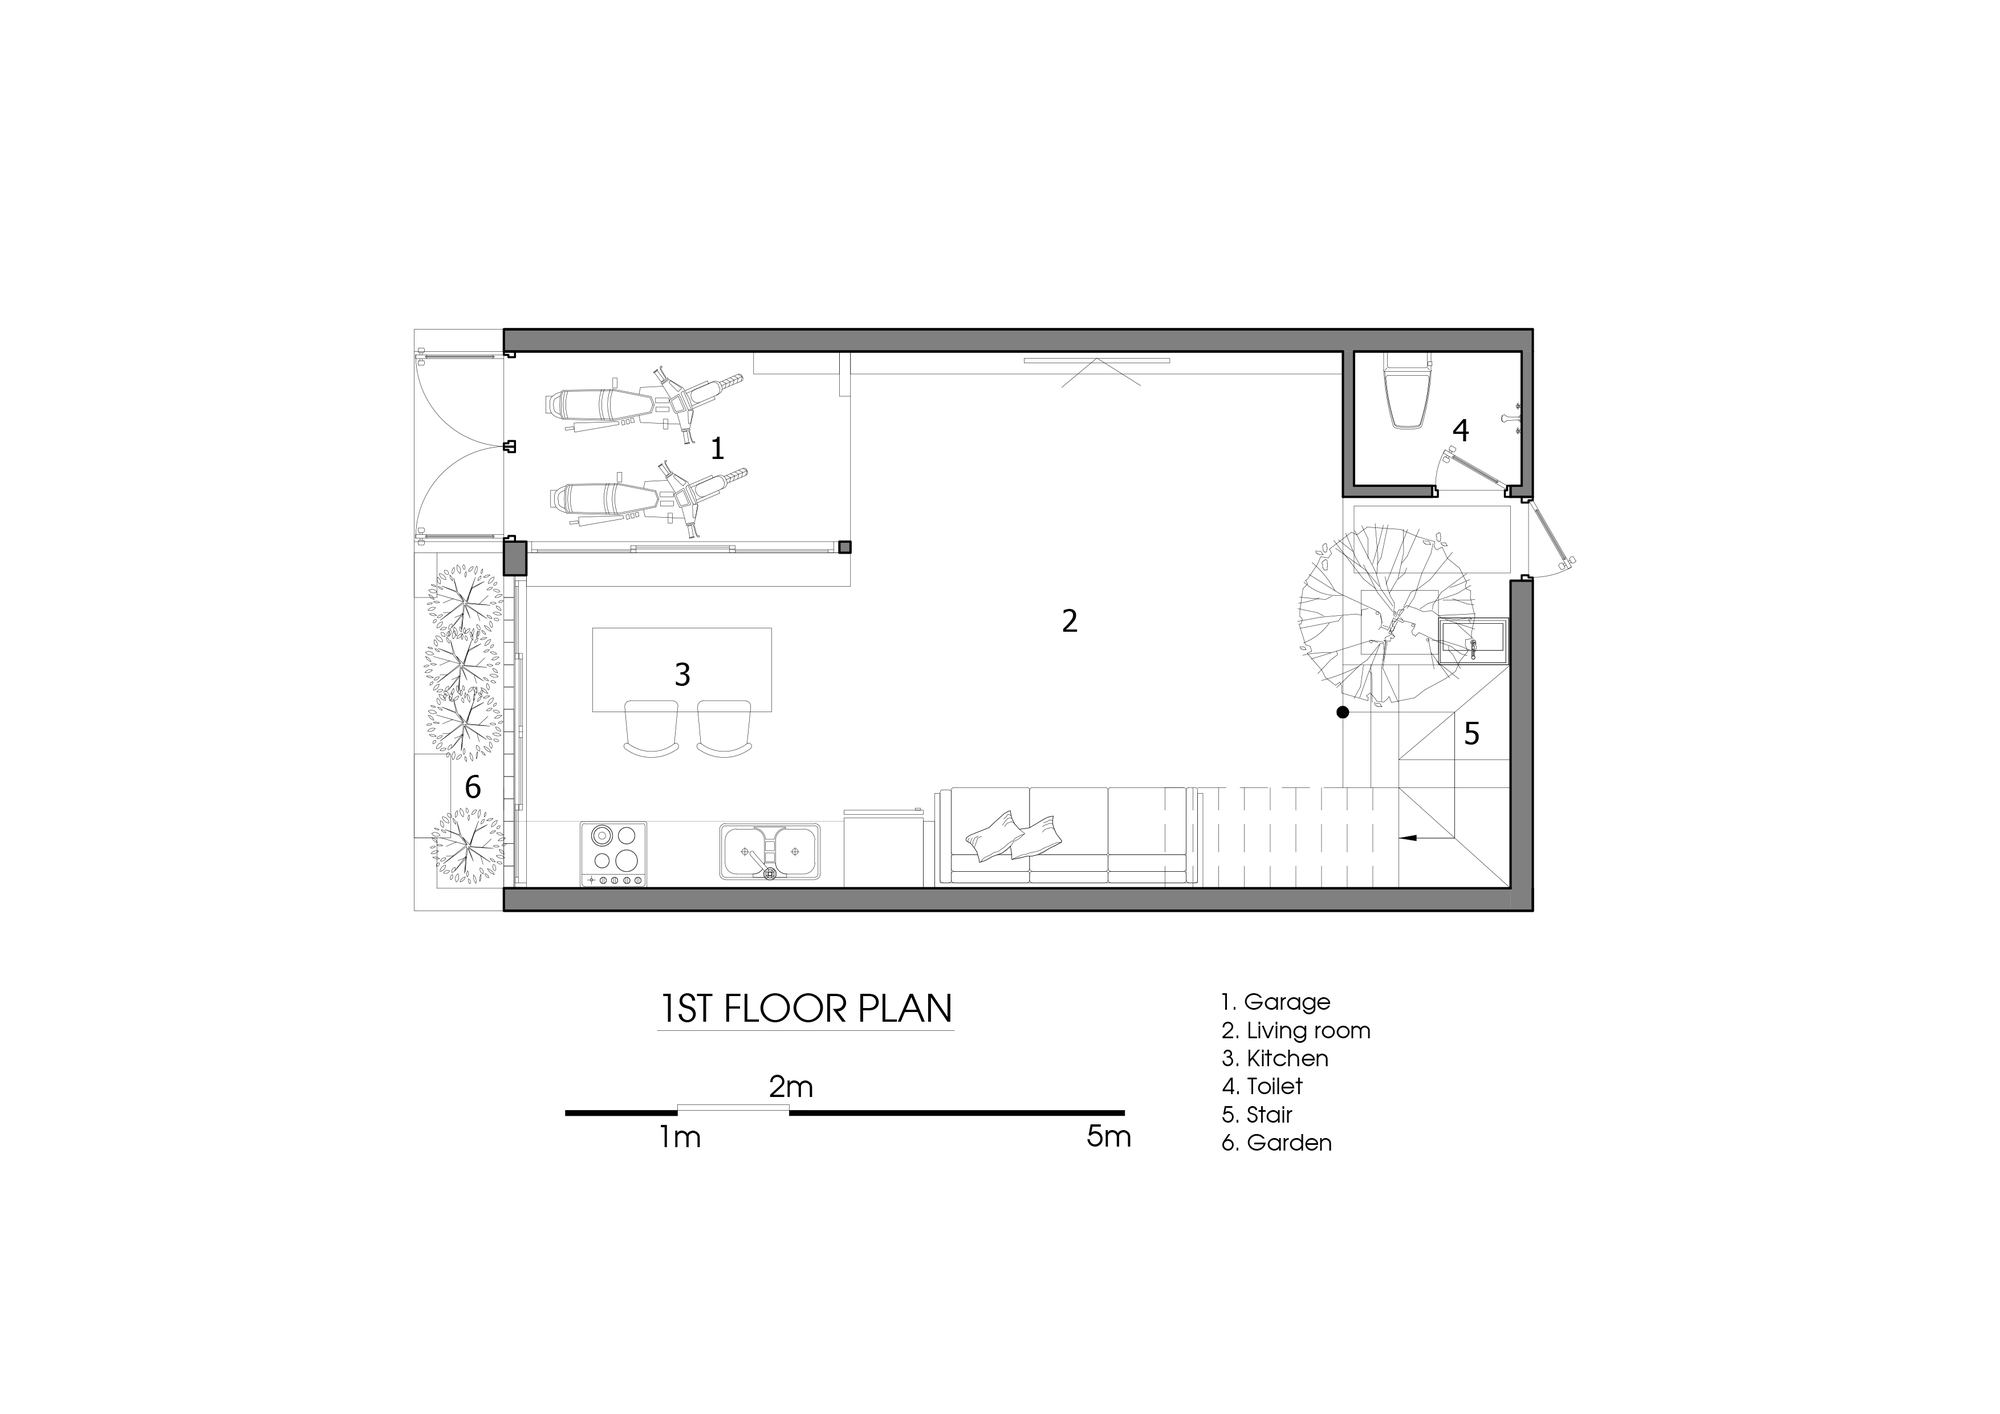 m1 _1st_FLOOR_PLAN.jpg